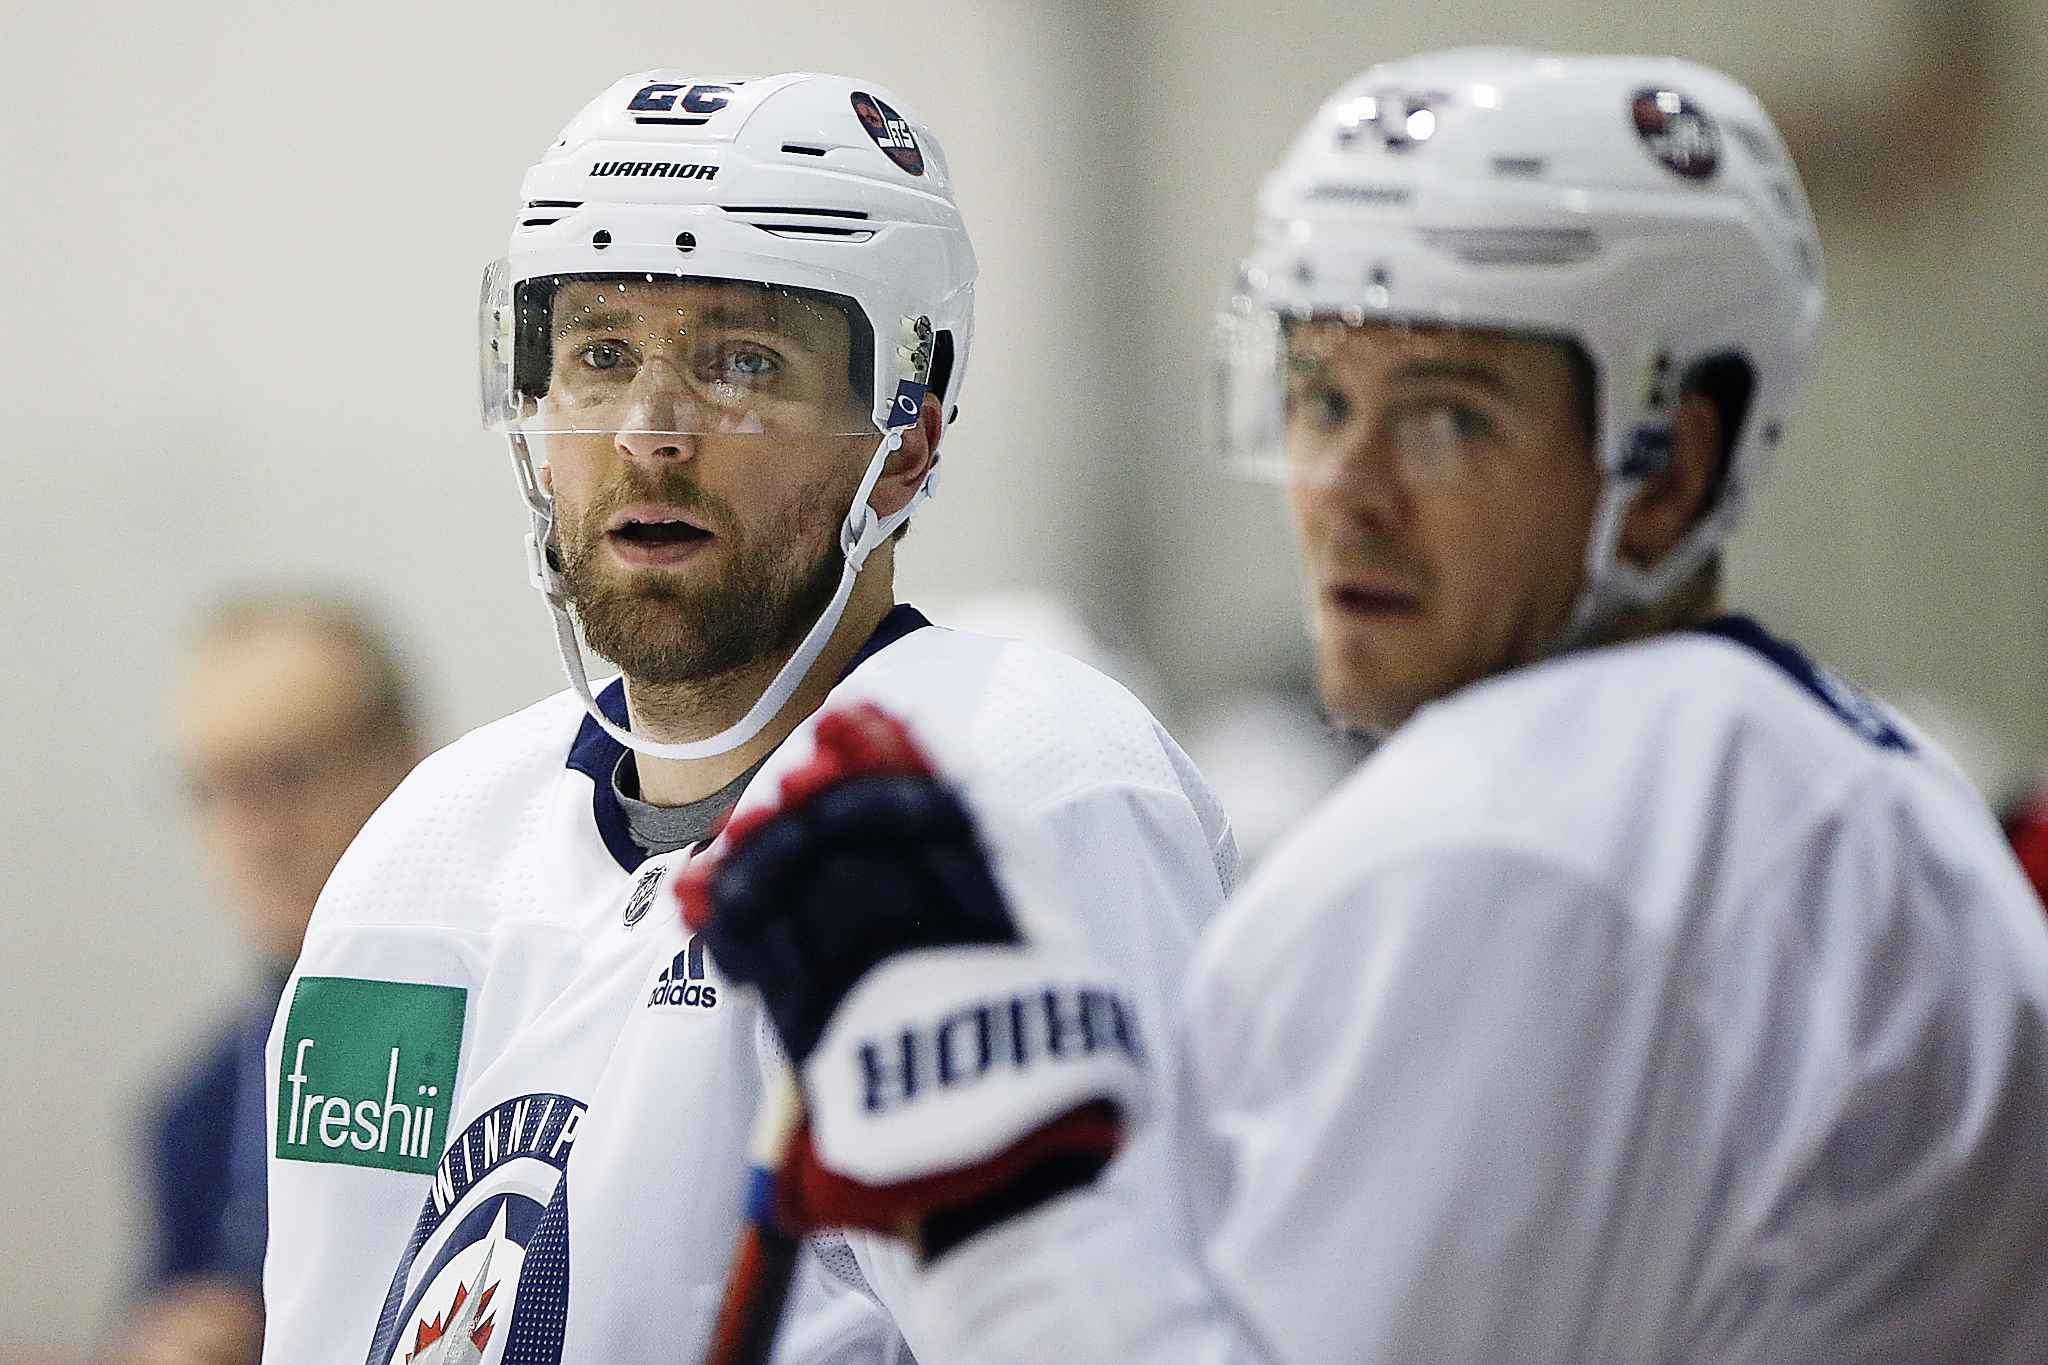 Former Jets line mates Blake Wheeler, left, and Mark Scheifele both have had success scoring since being separated.